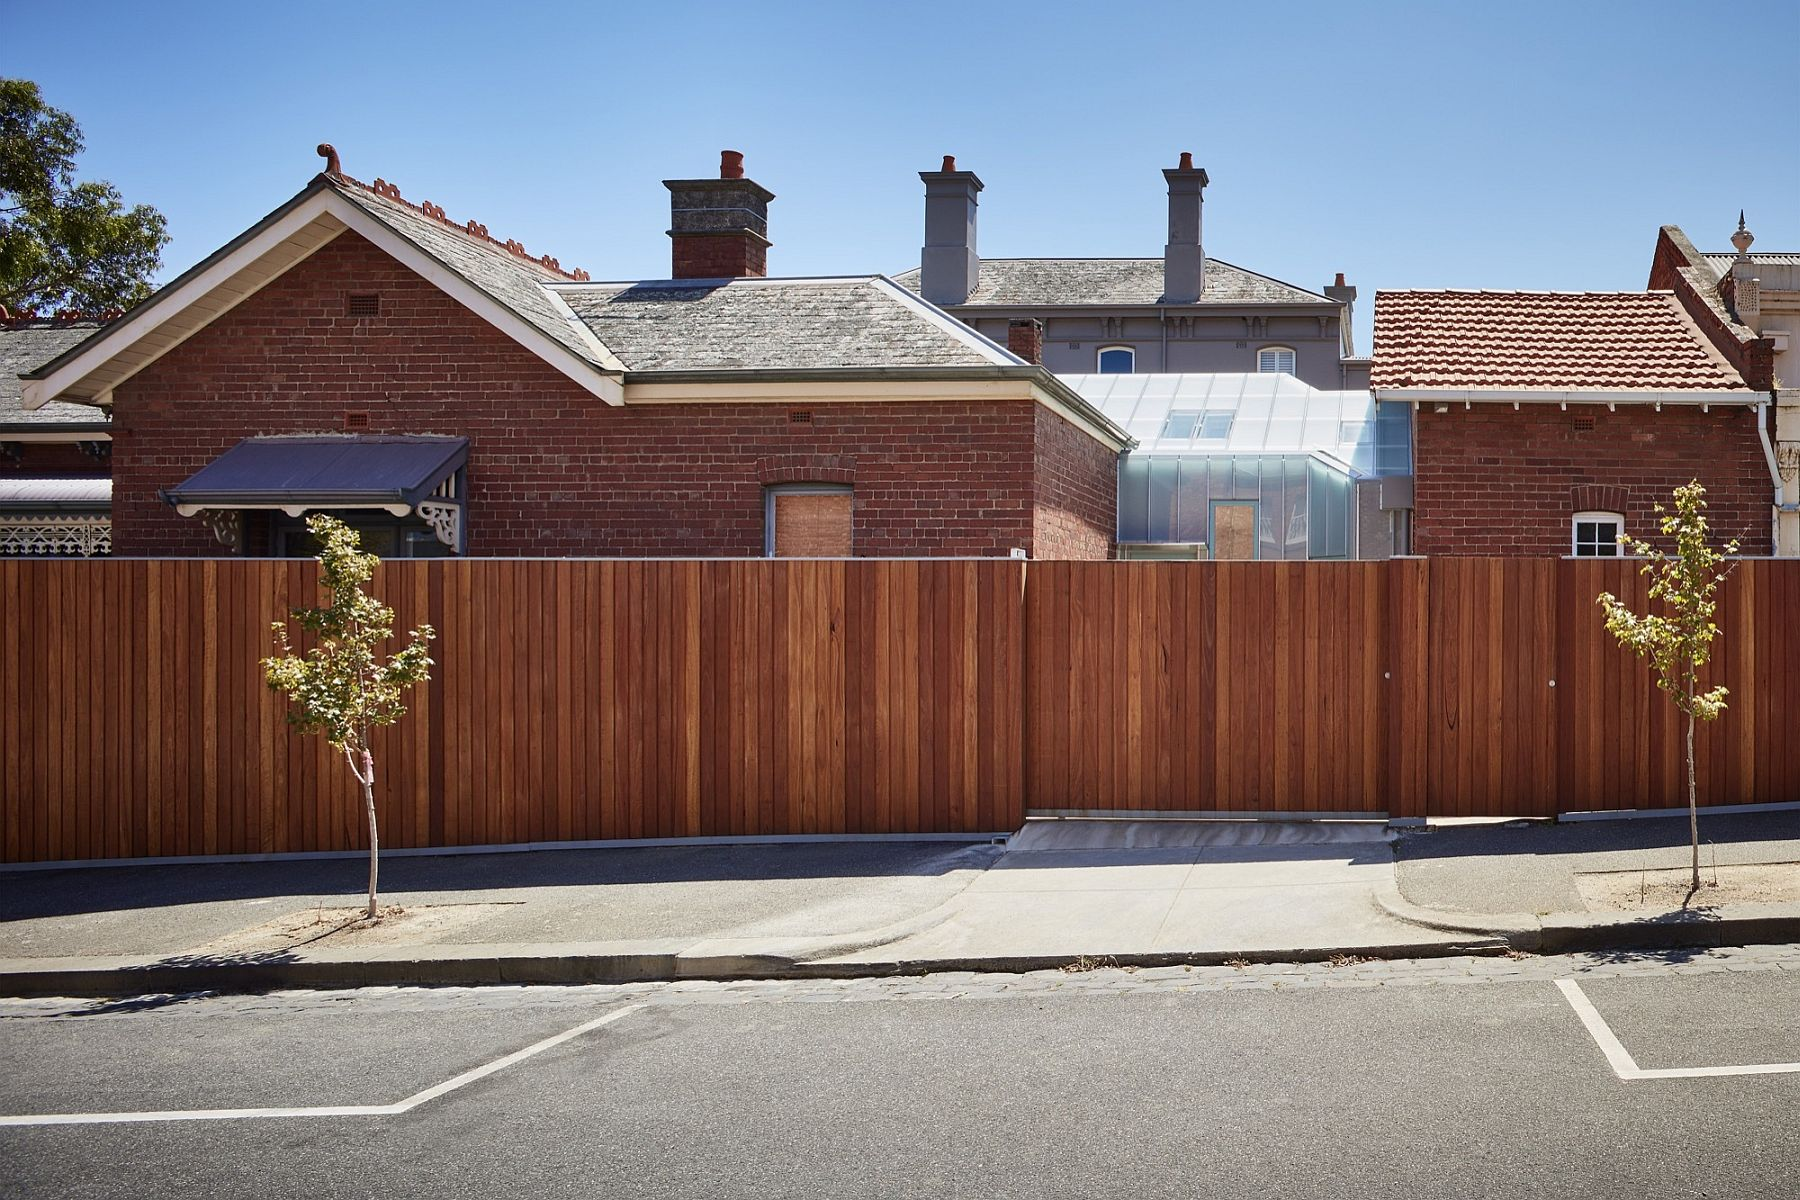 Street view of the transformed home in Melbourne with brick facade Parkville Residence: Eloquent Simplicity Stitches Together Modern and Classic